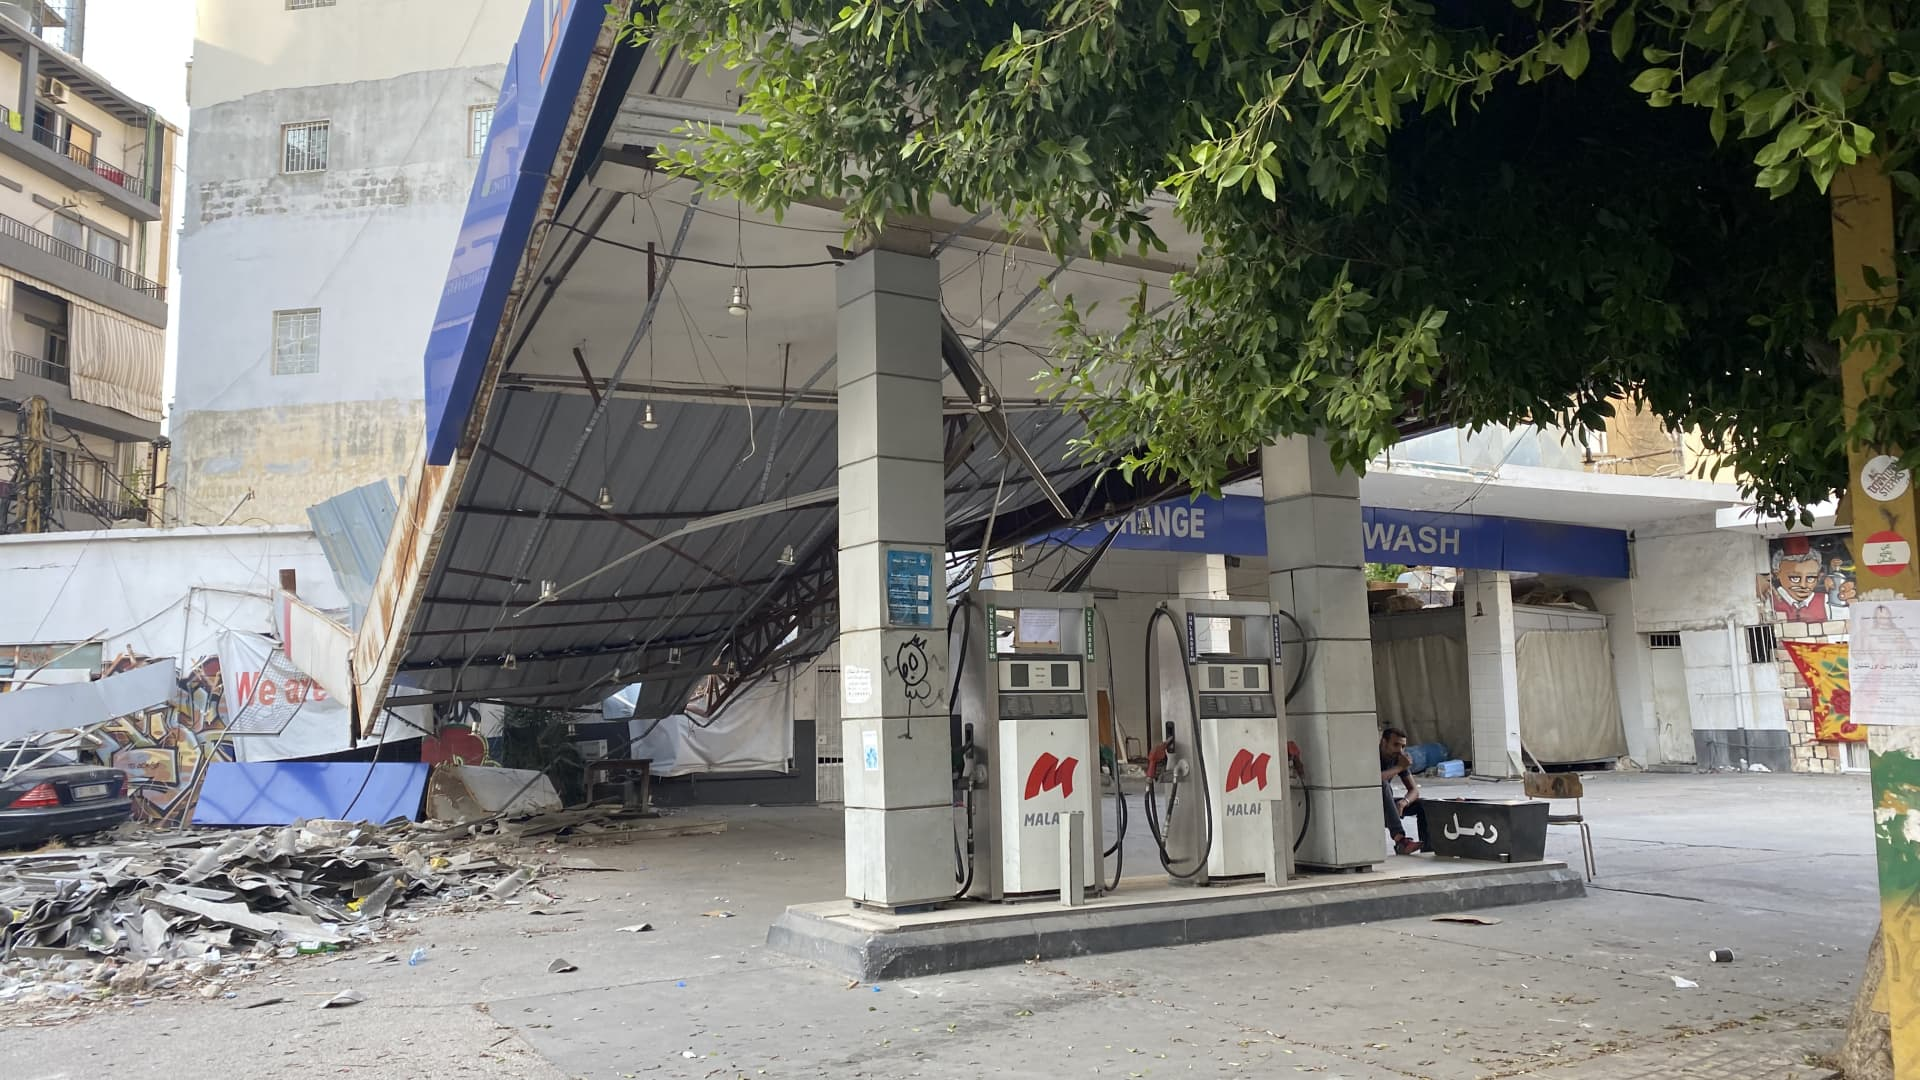 A gas station destroyed in the Beirut port explosion of August 2020 remains unrepaired in the city's Mar Mikhael district, more than a year after the blast. Beirut, Lebanon, September 25, 2021.